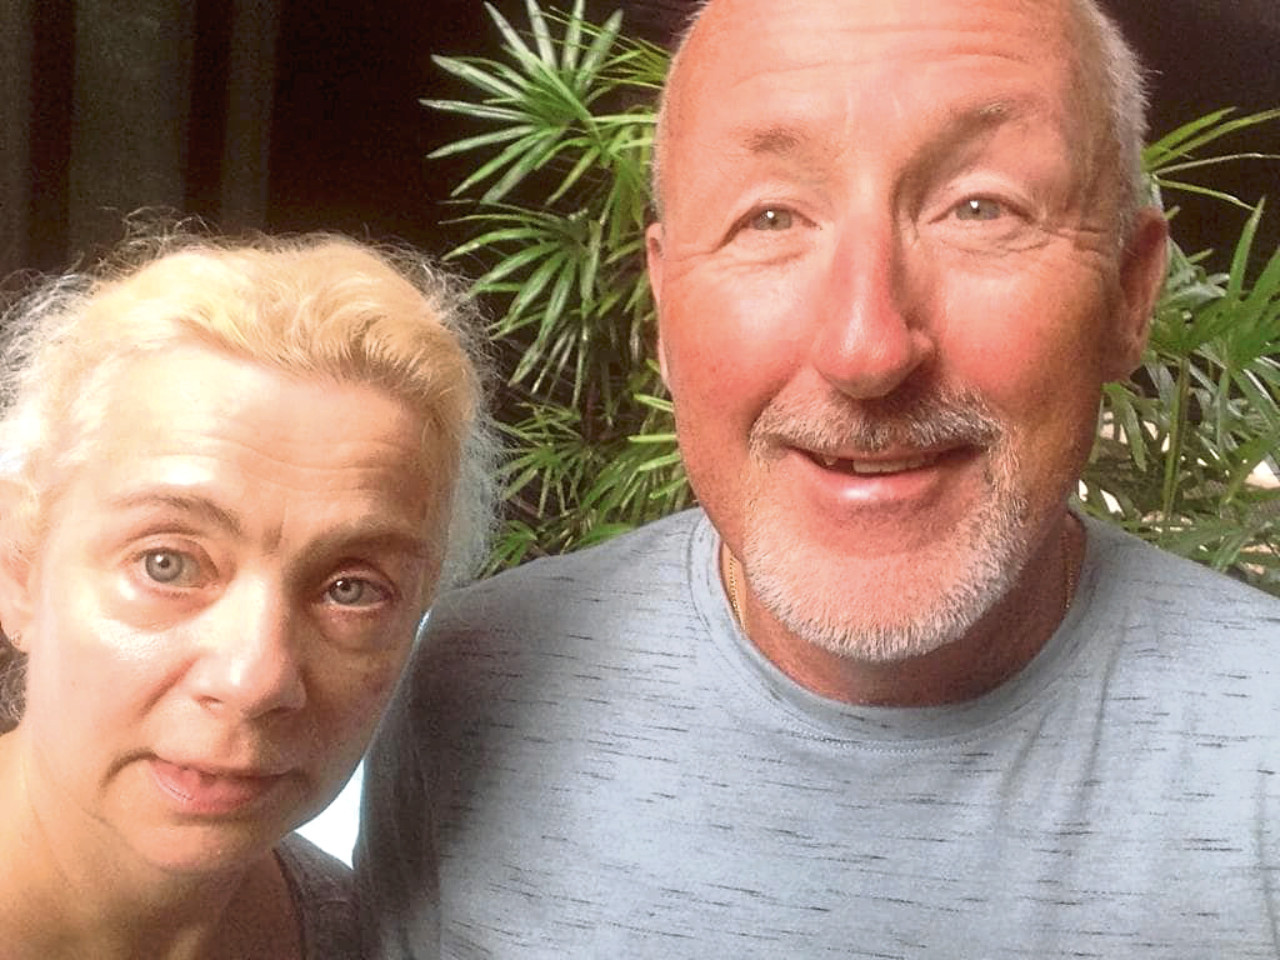 Kayaker Kenny McPherson, pictured with his partner Alexandra, has been missing in Spain since November 23